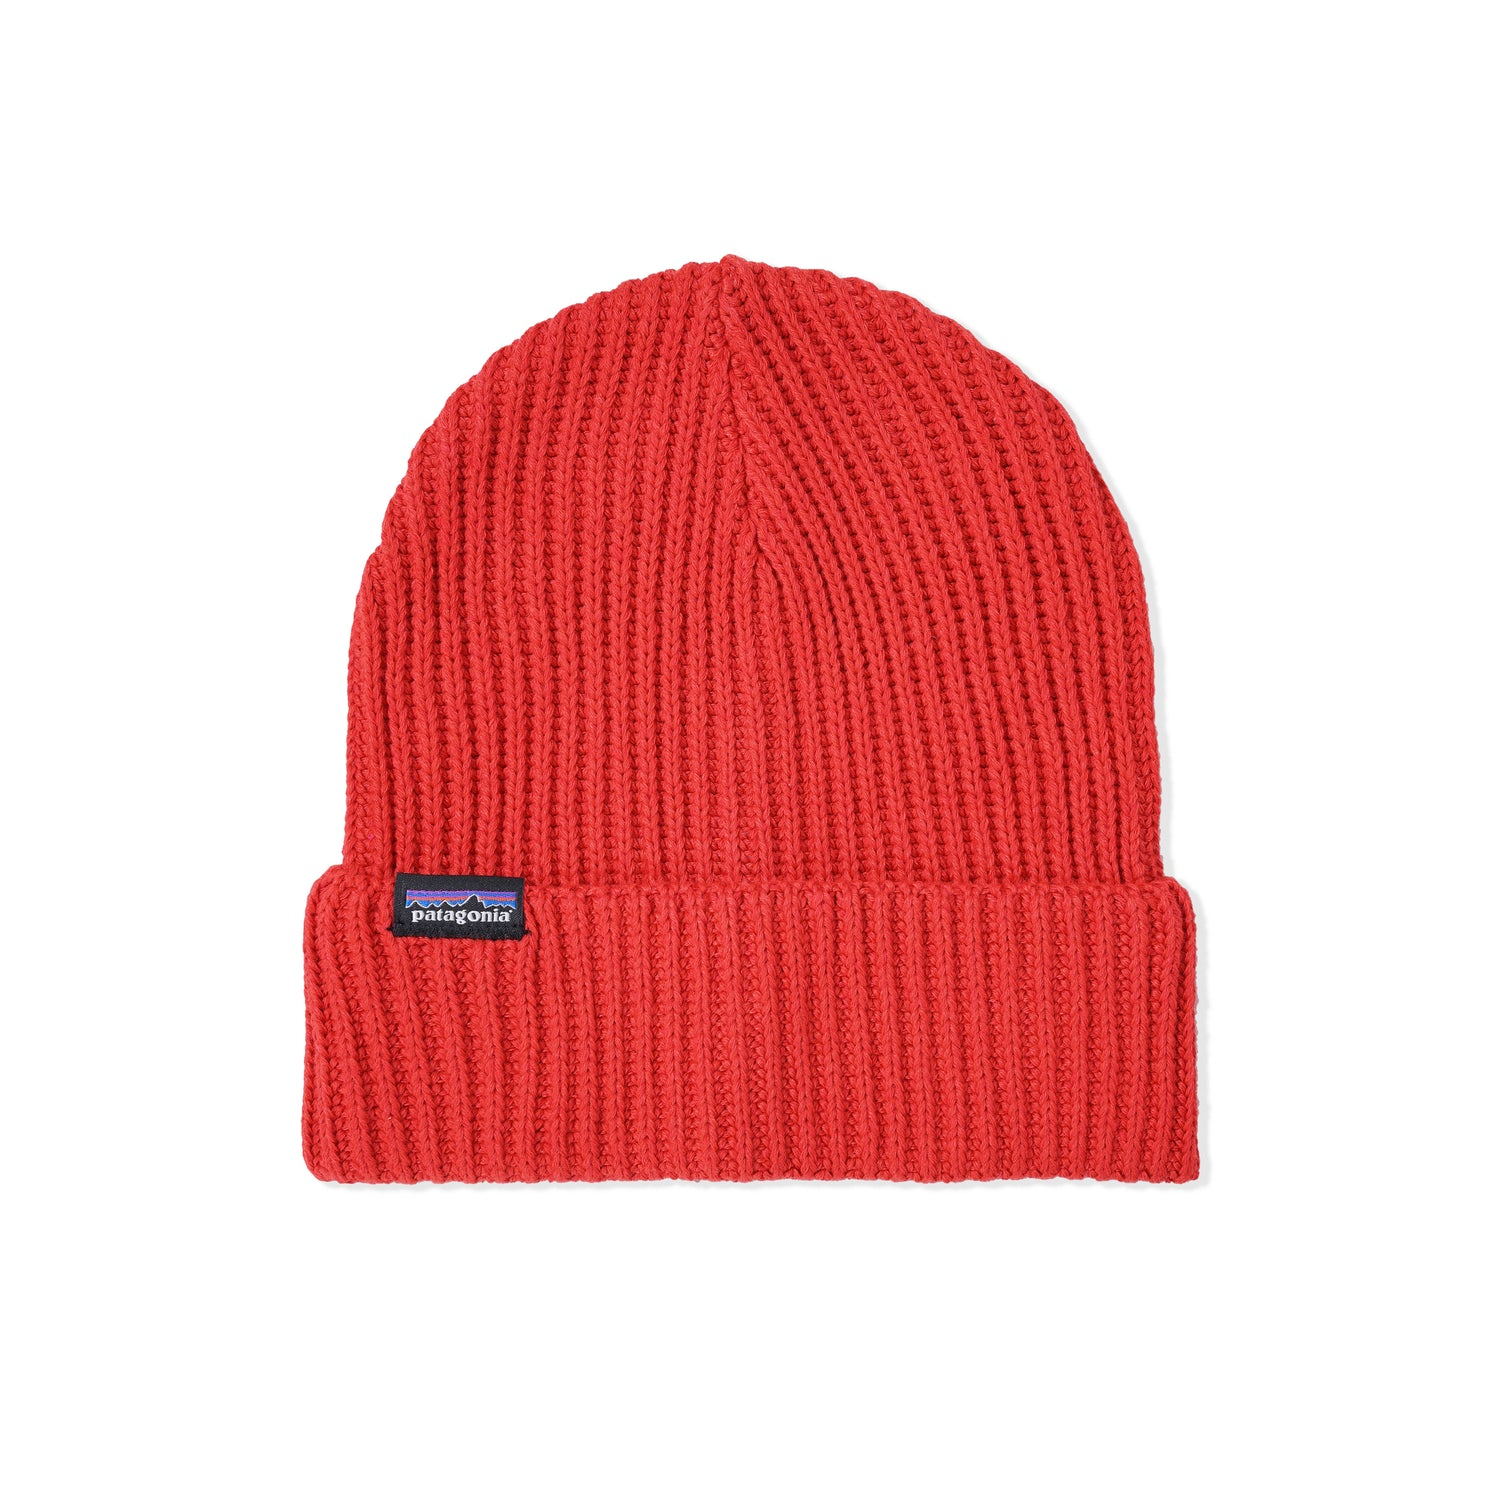 Fishermans Rolled Beanie, Rincon Red